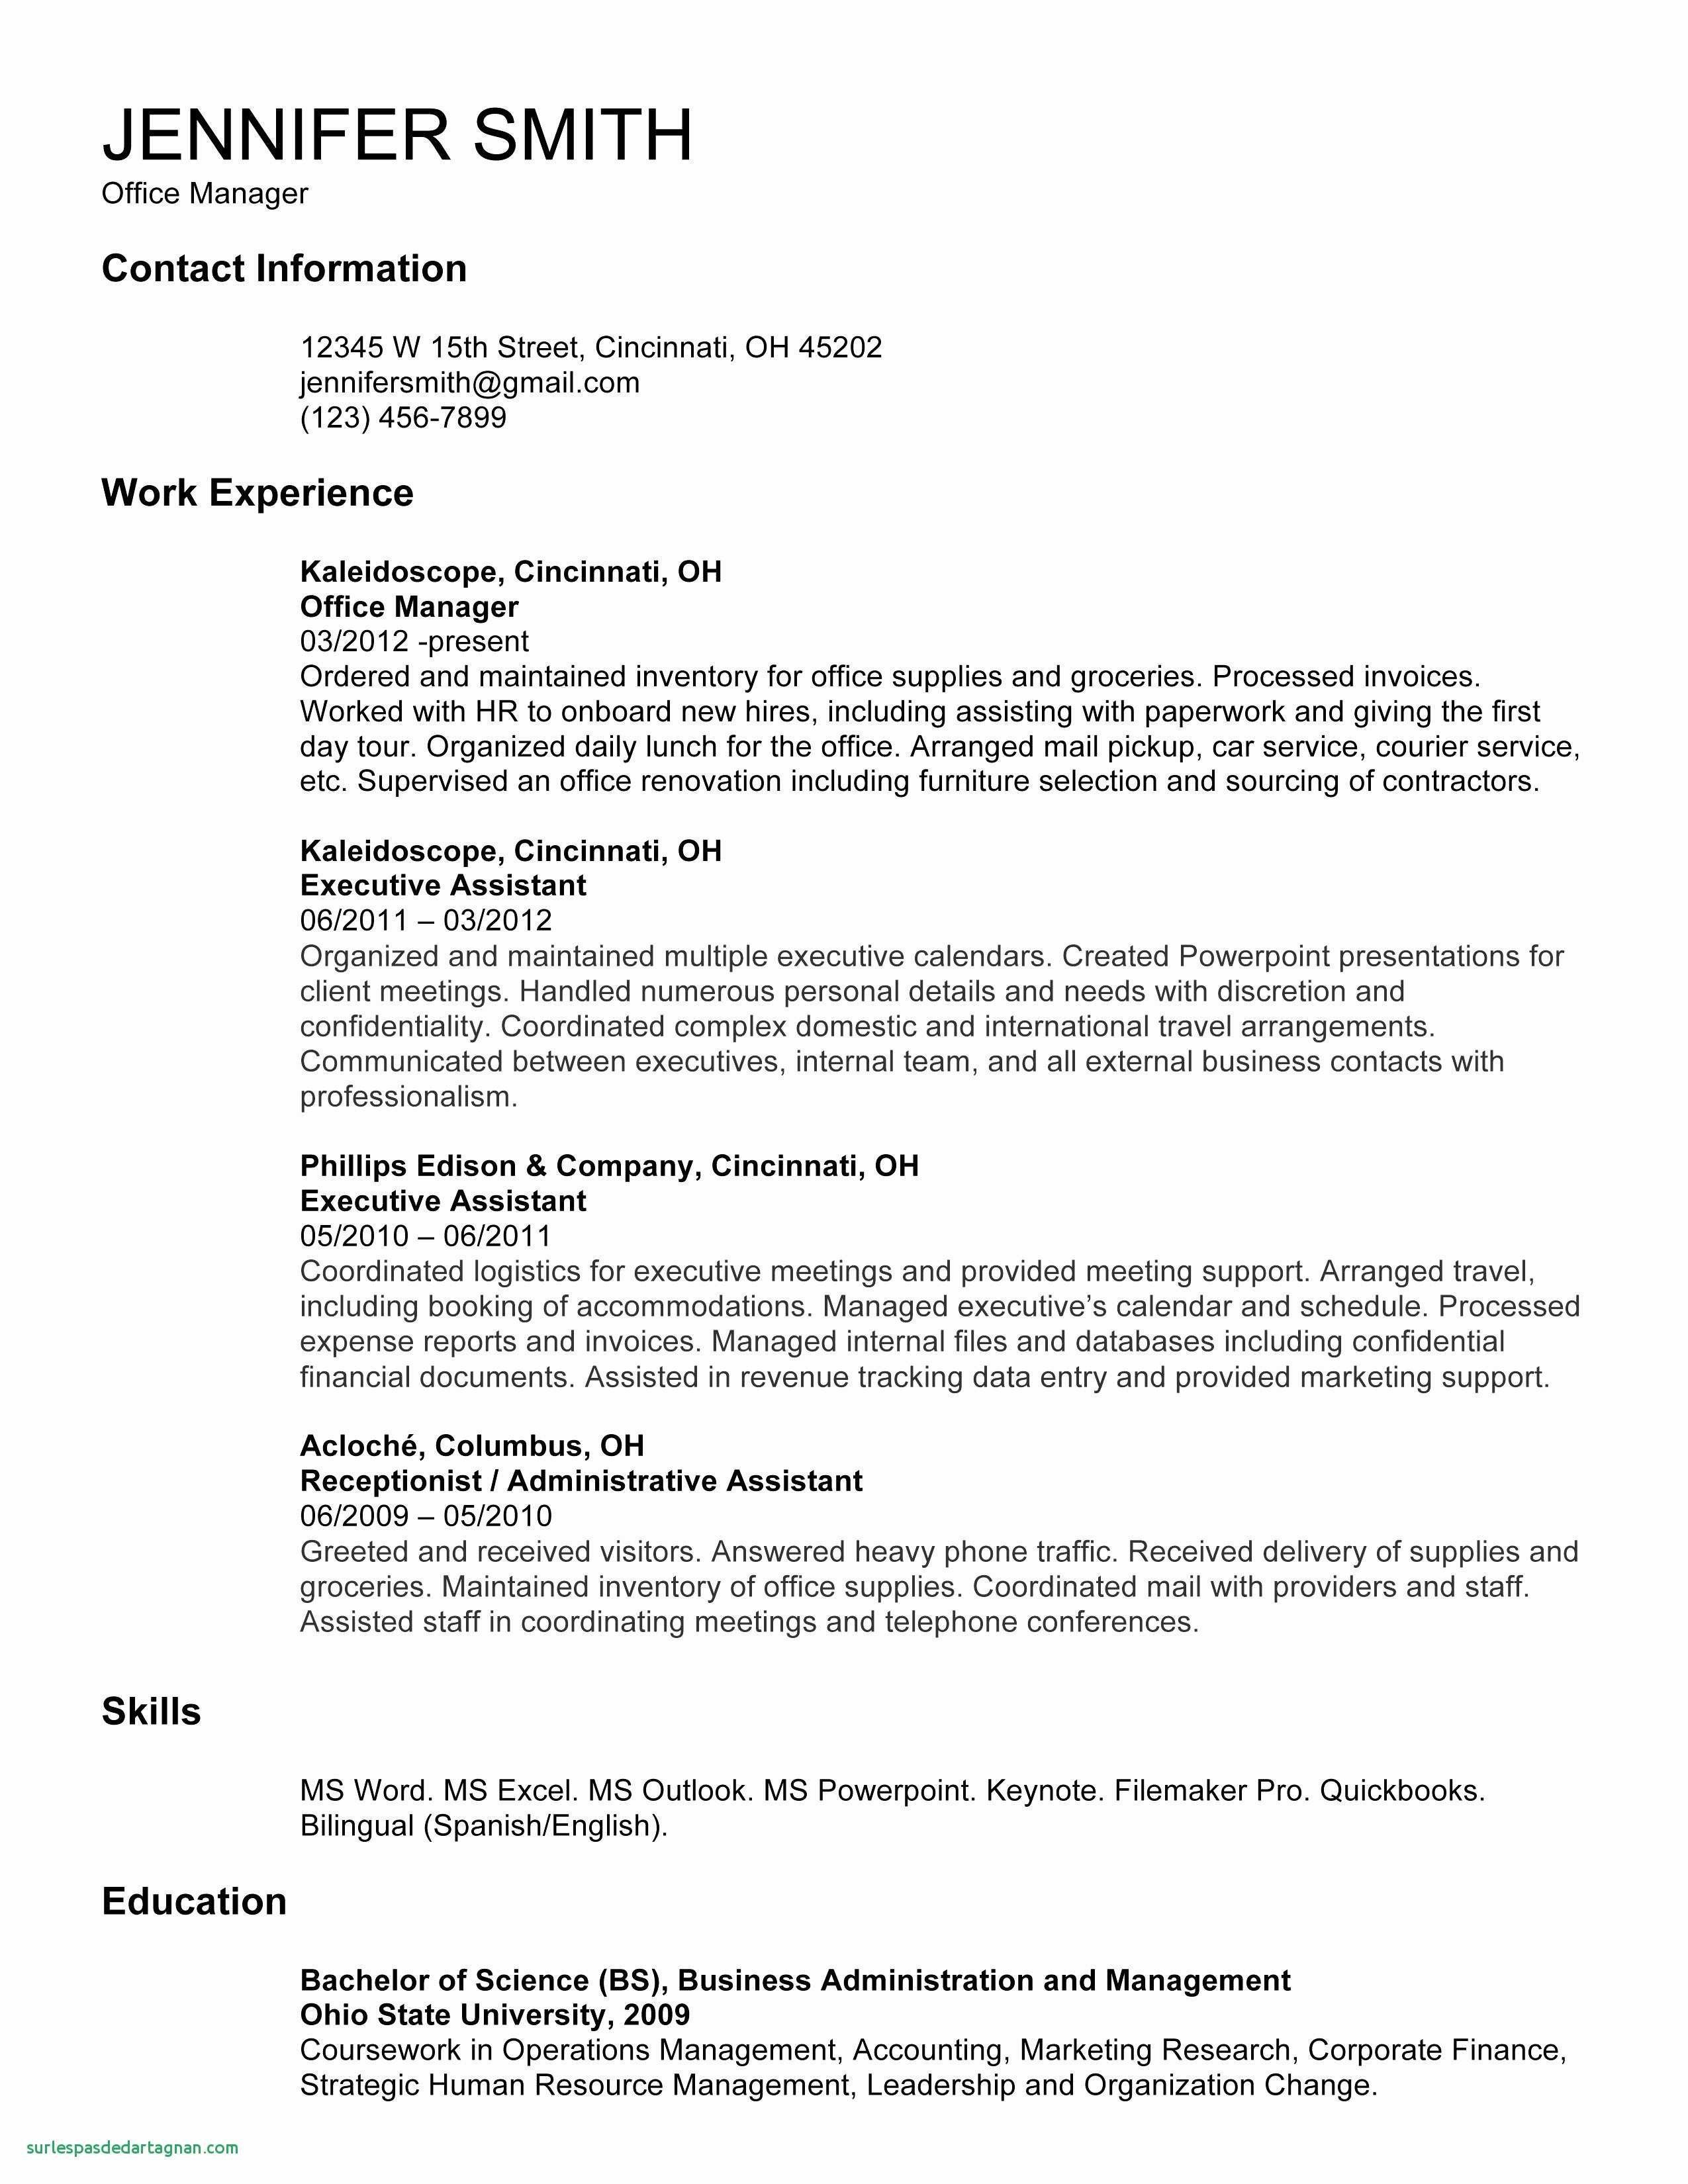 Excel Resume Template - Resume Template Download Free Unique ¢Ë†Å¡ Resume Template Download